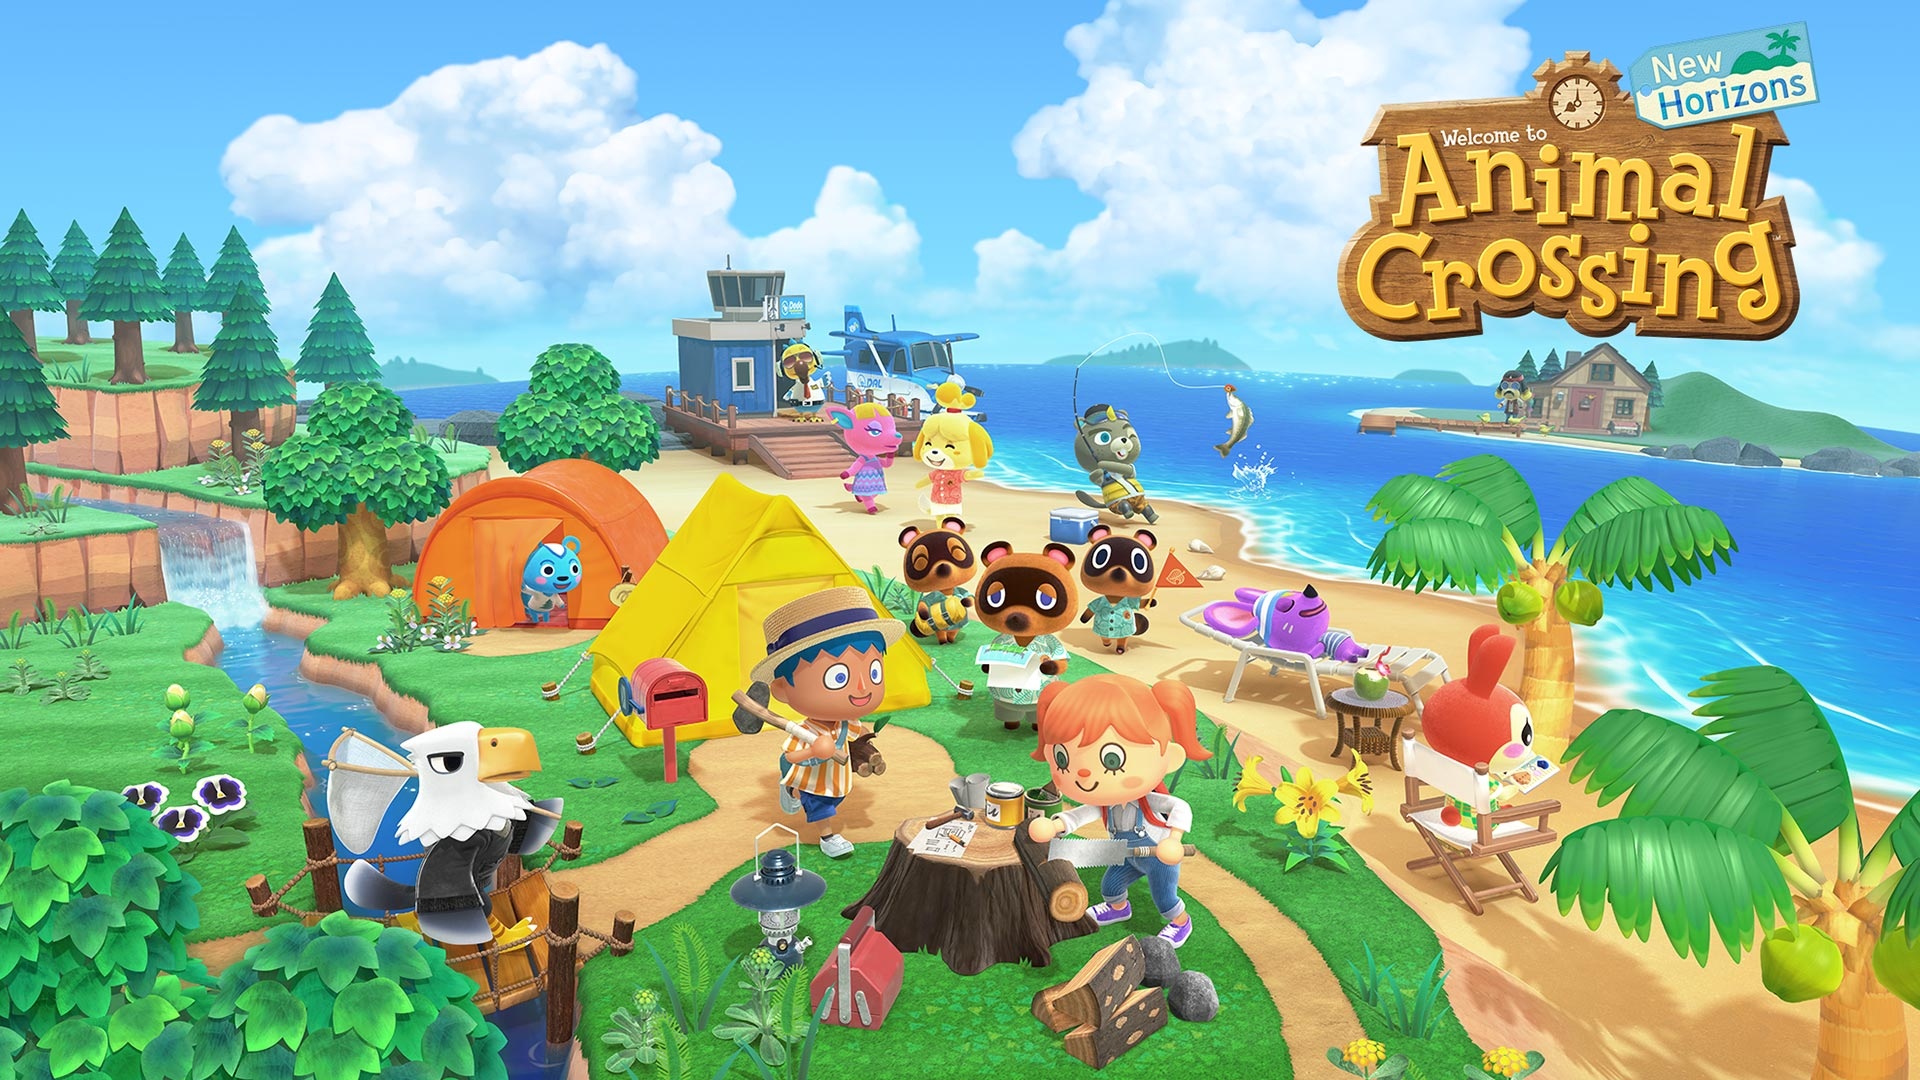 Events Removed From Animal Crossing New Horizons